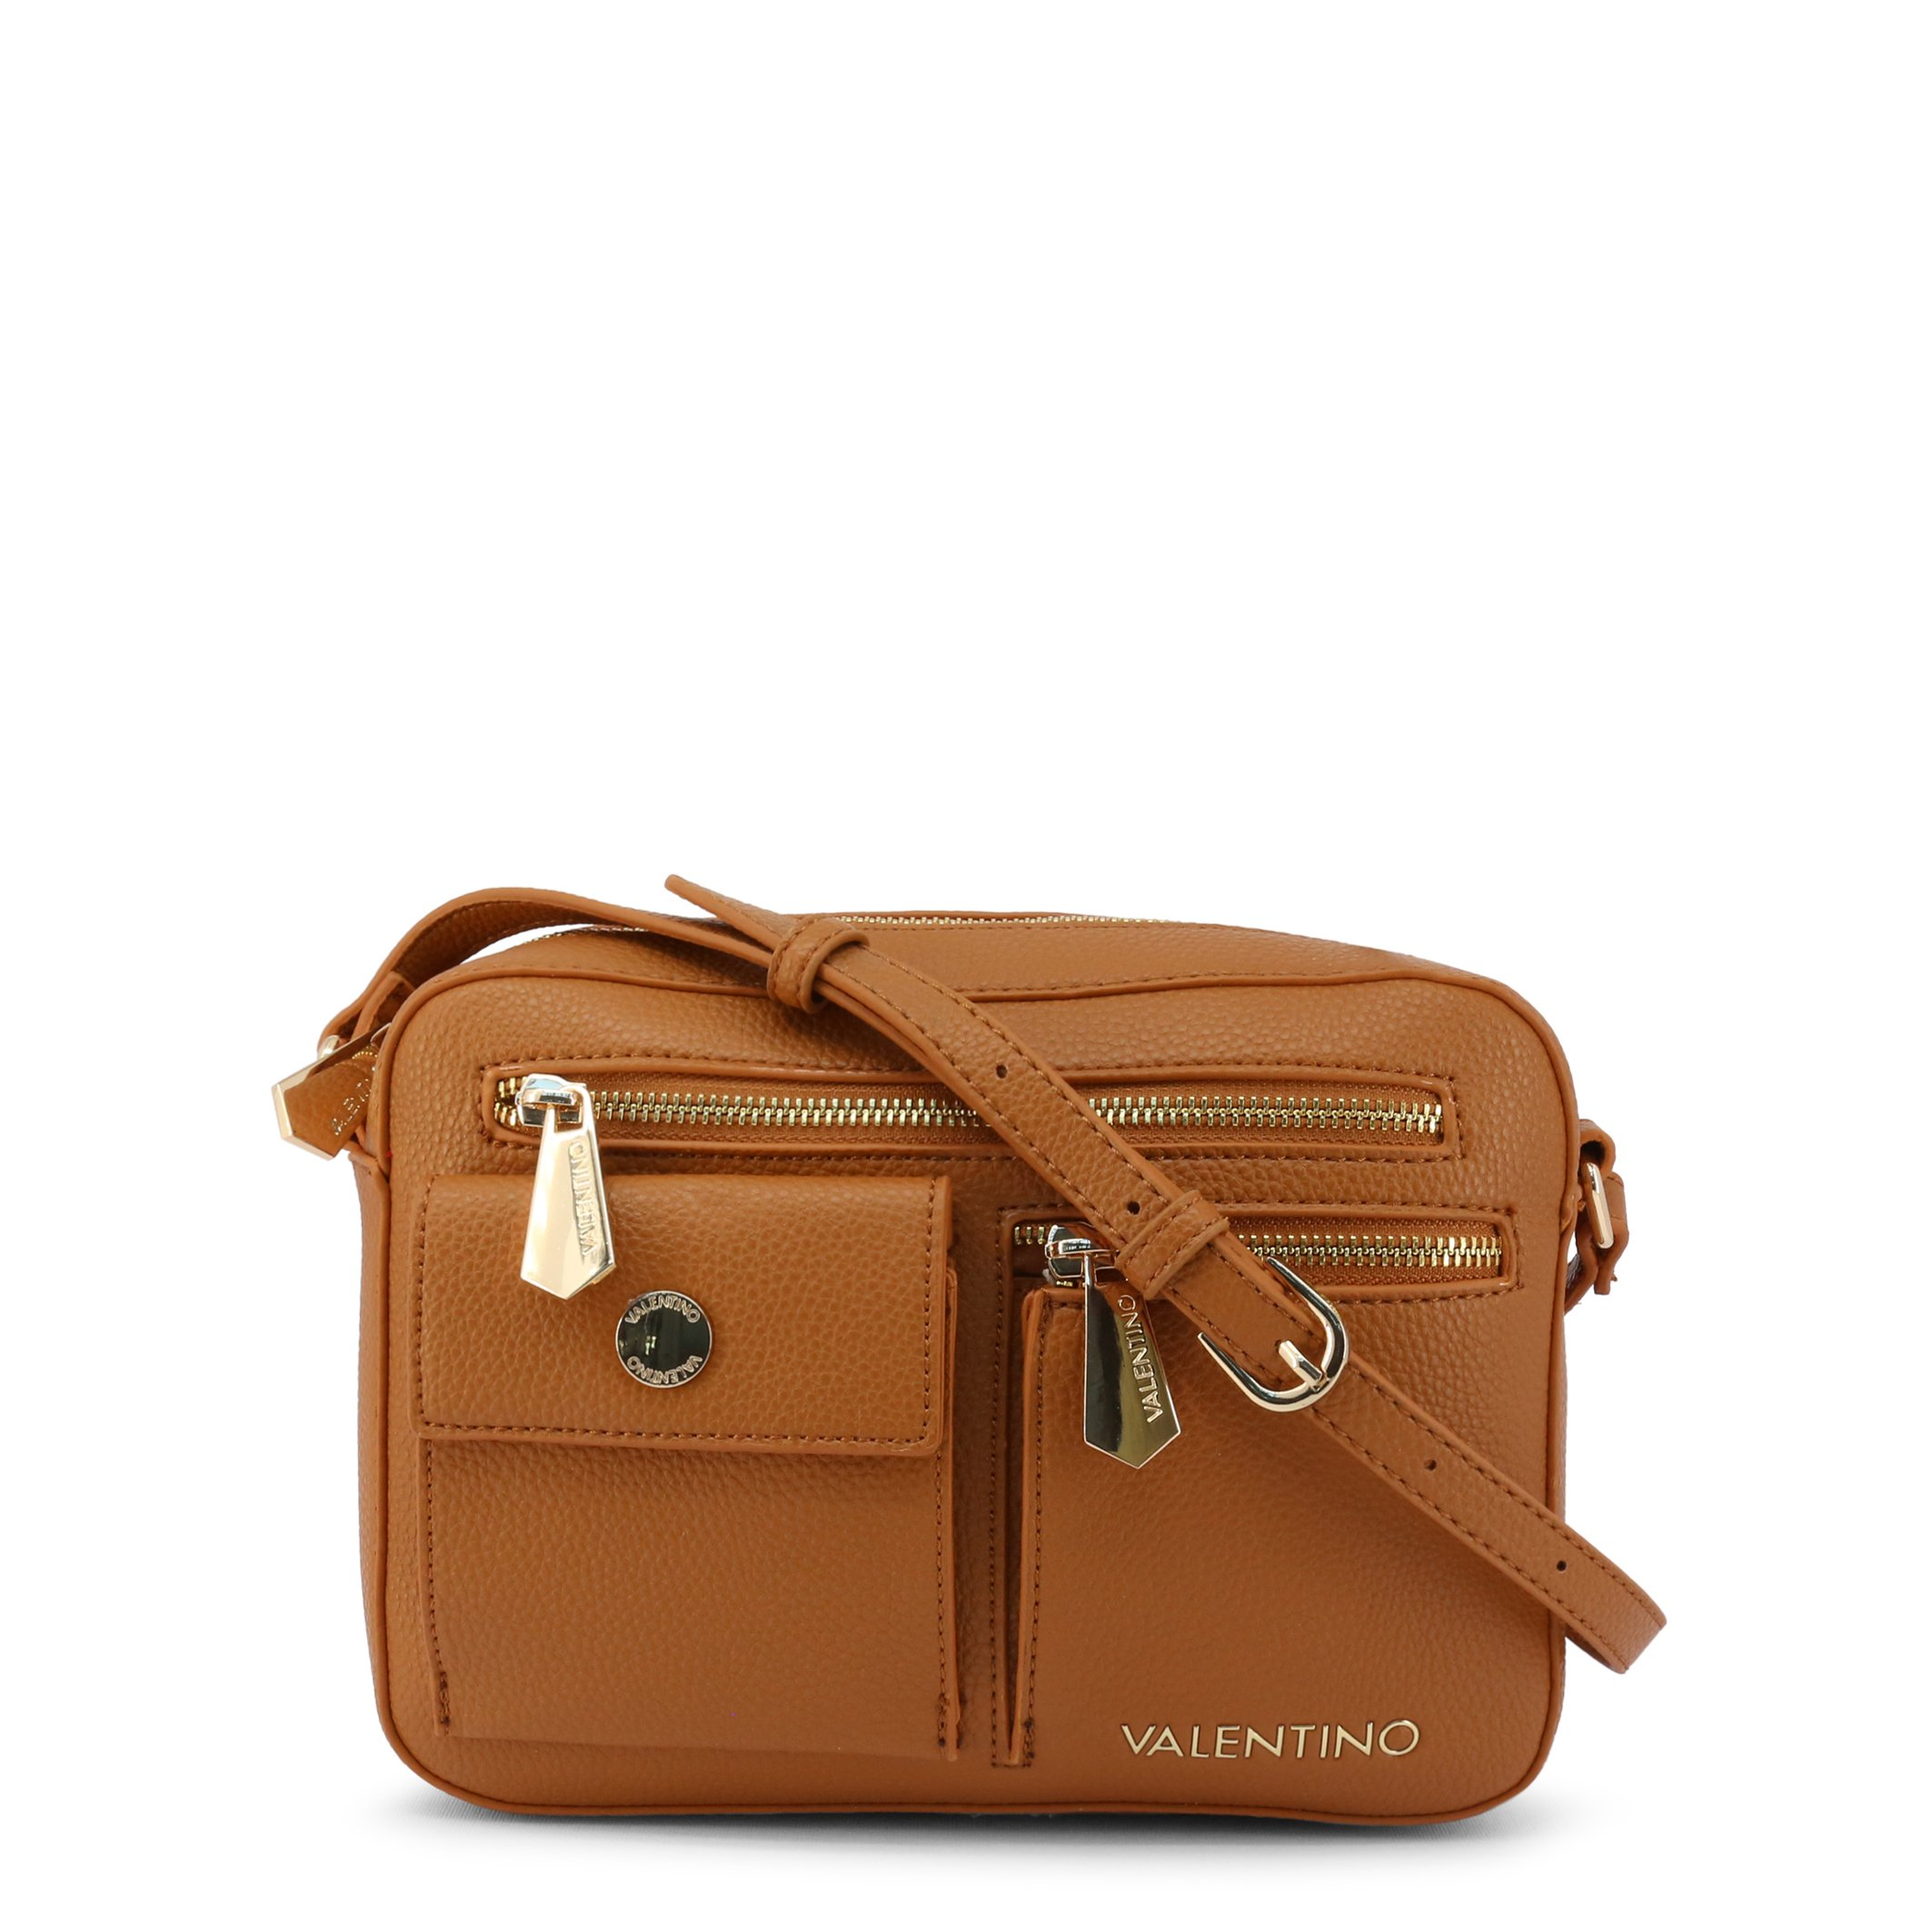 Valentino by Mario Valentino Women's Clutch Bag Various Colours CASPER-VBS3XL03 - brown NOSIZE